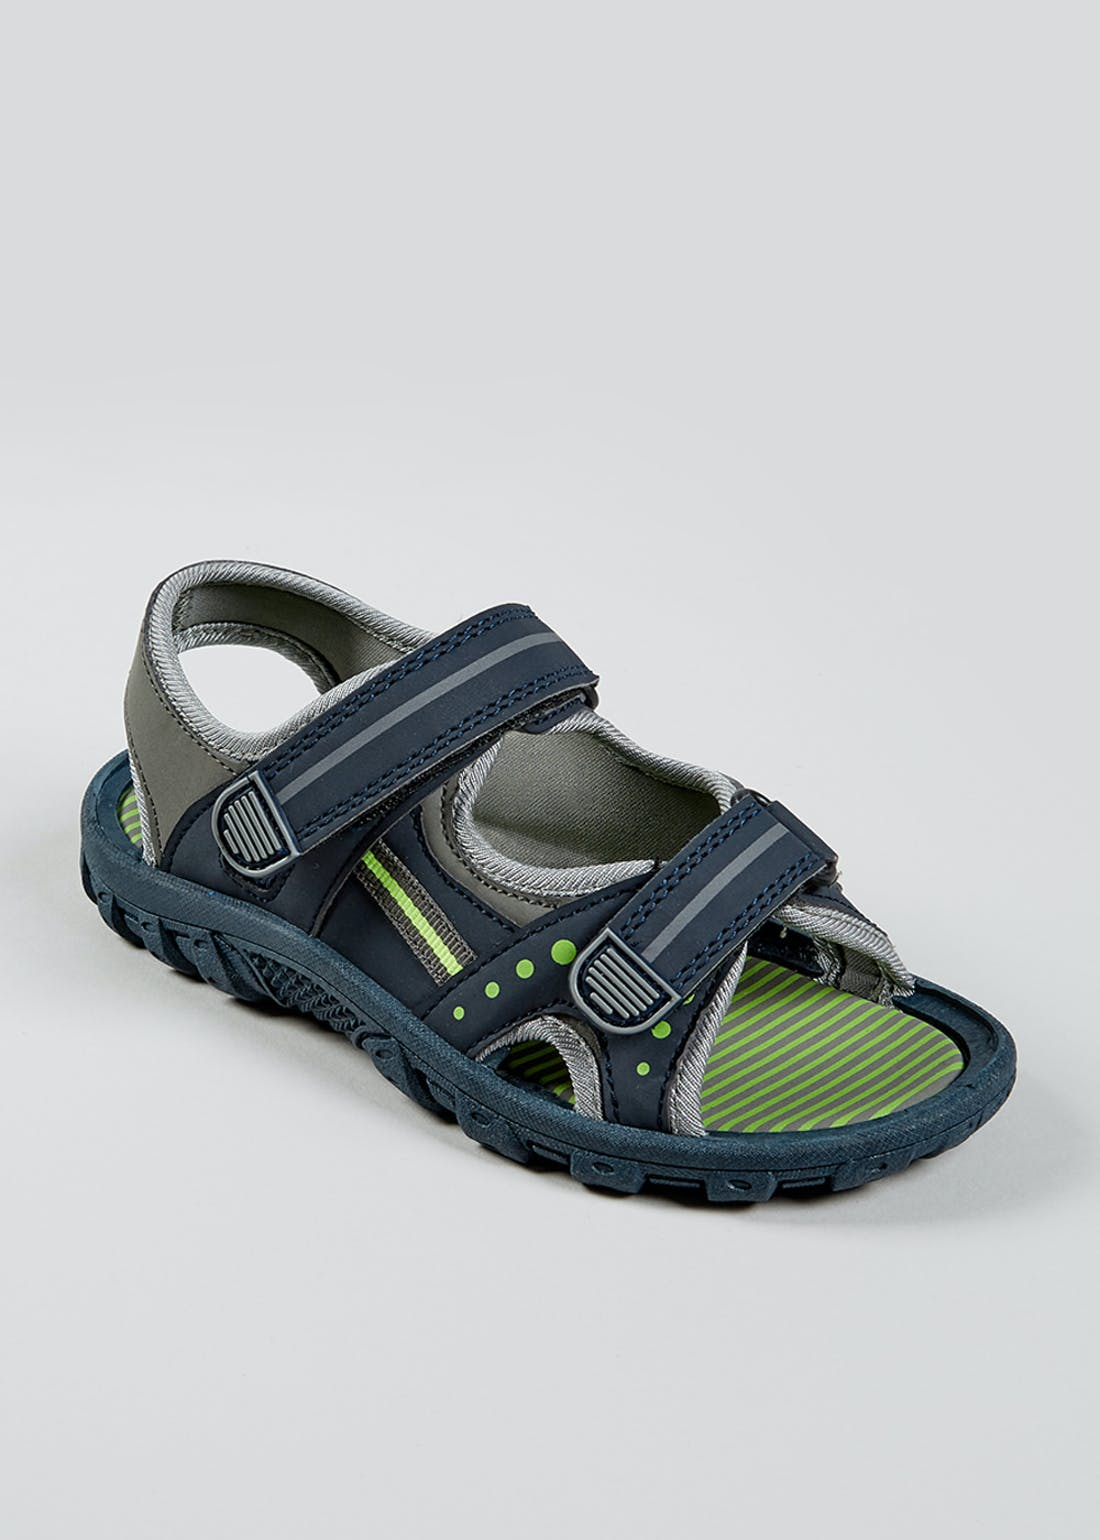 Kids Adventure Sandals (Younger 10-Older 2)